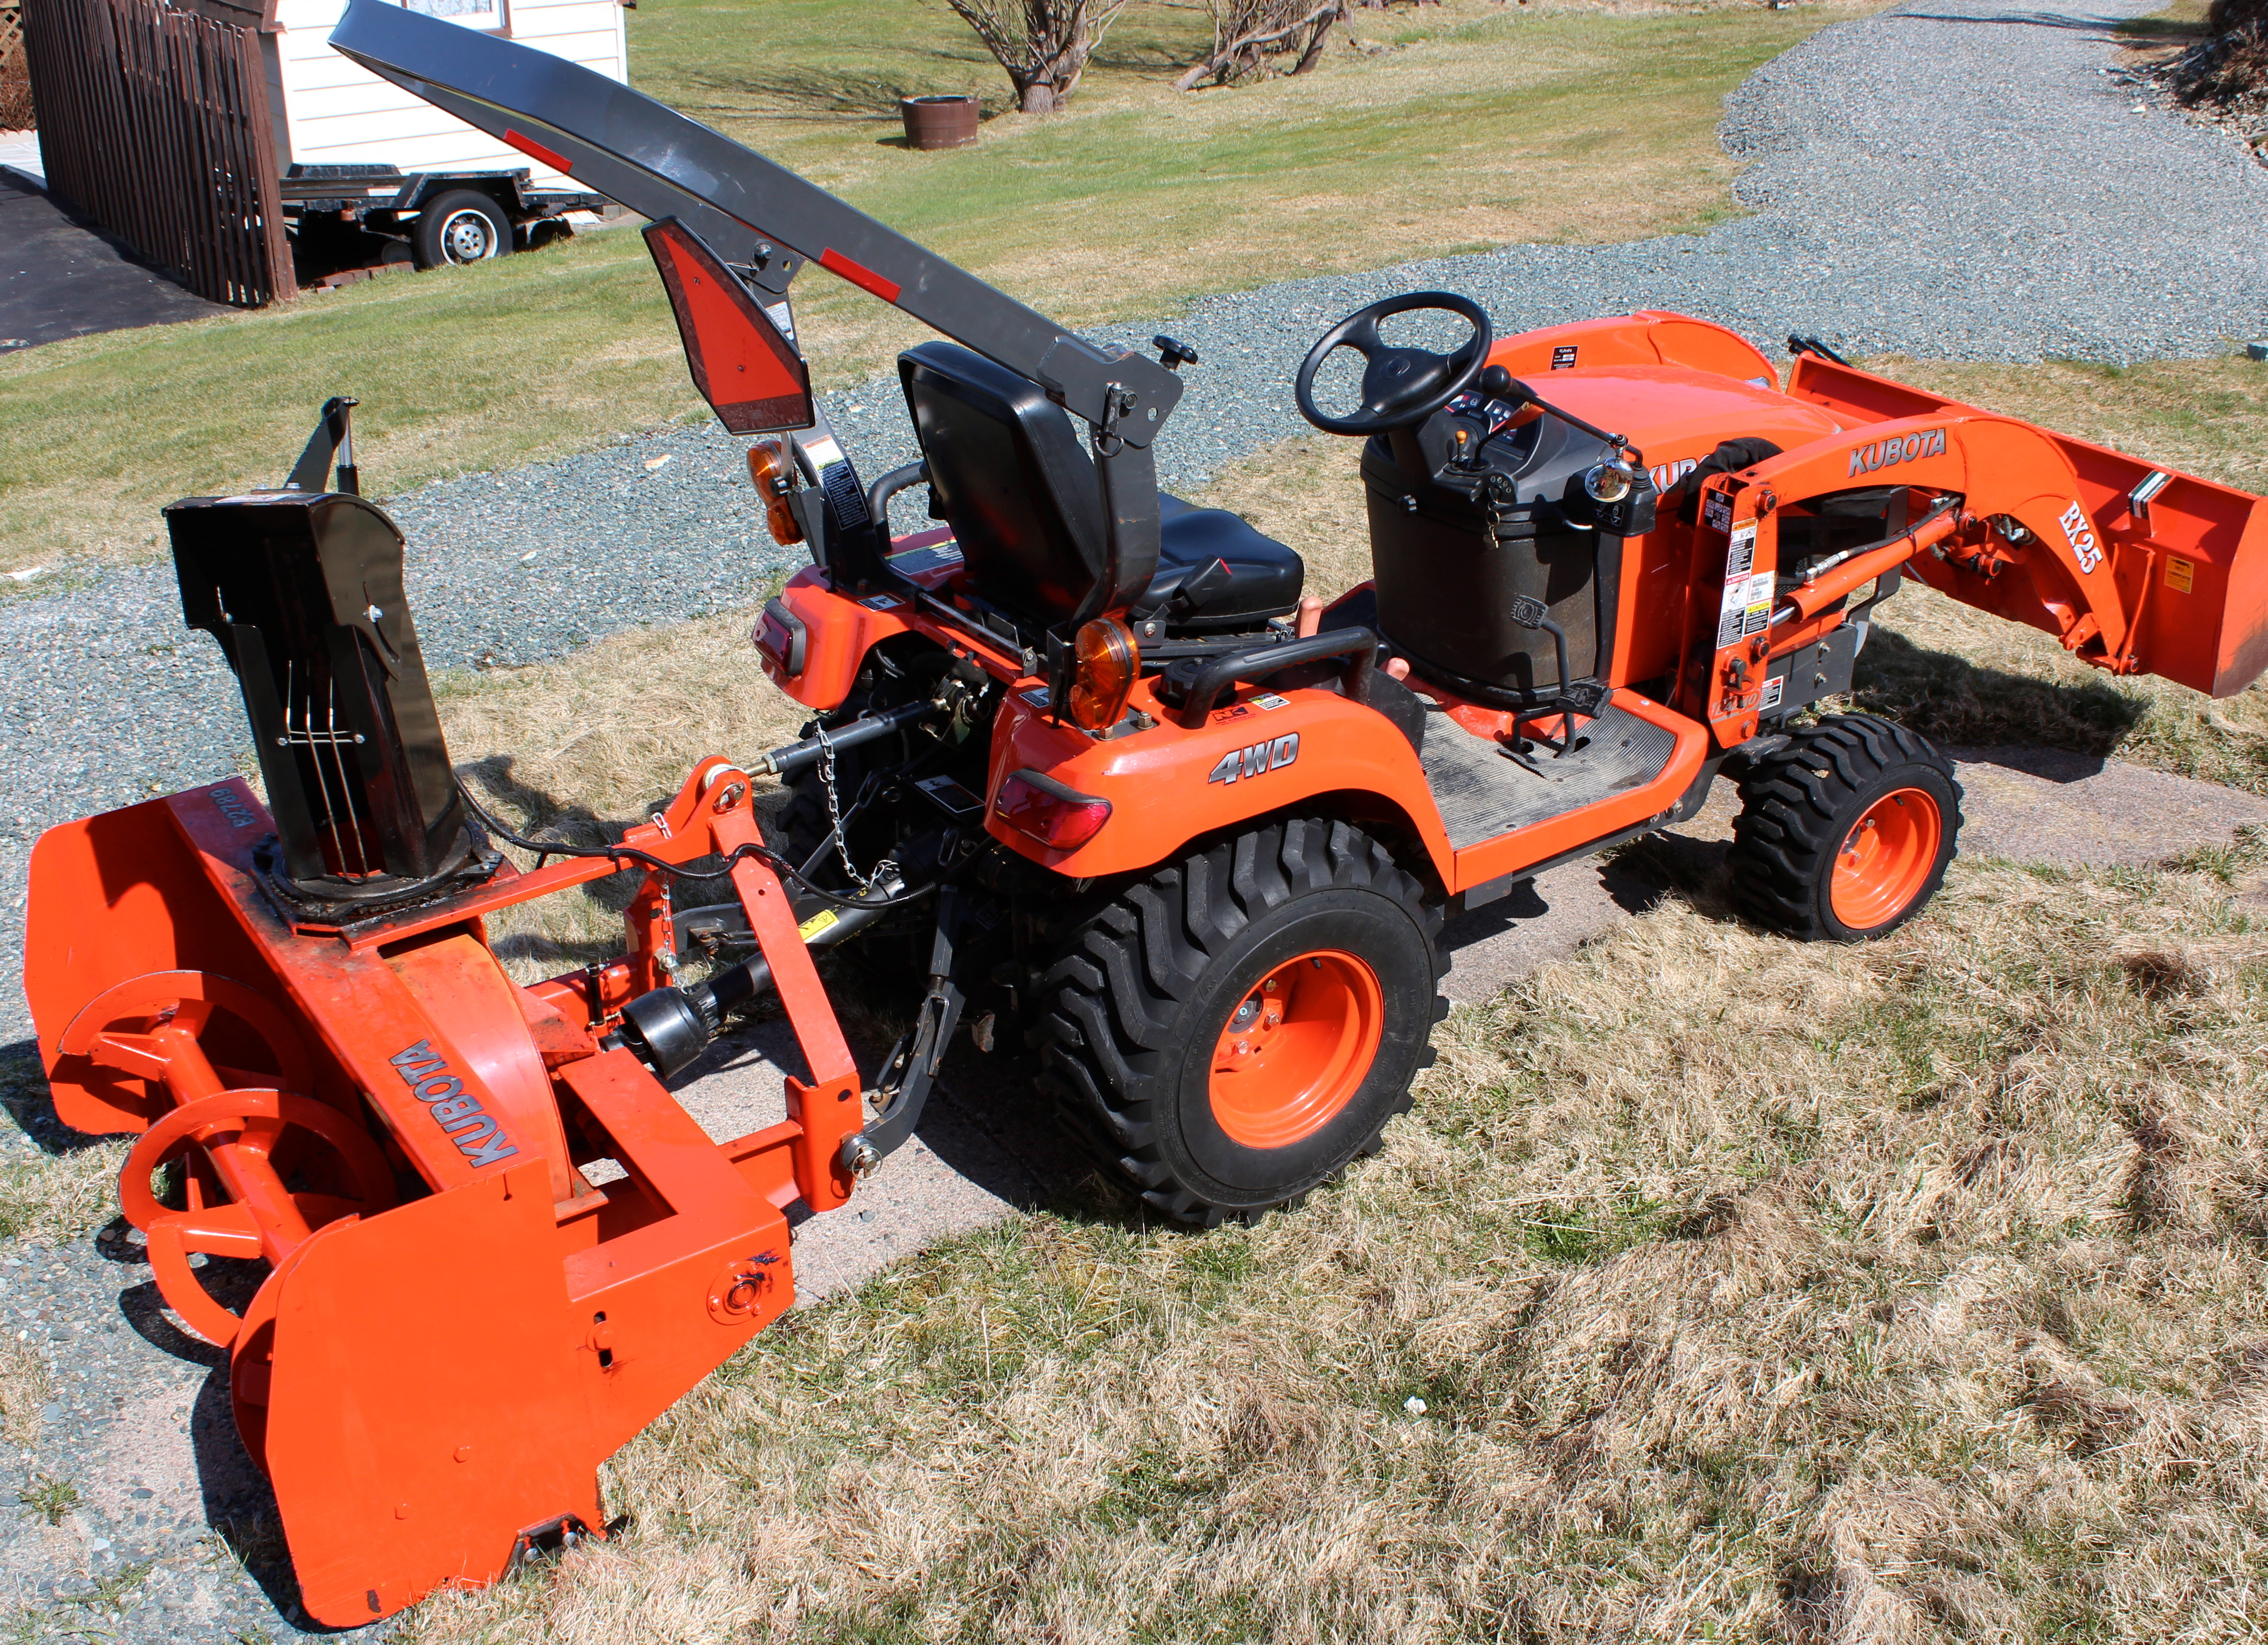 Picture of Removing Snowblower From Kubota Tractor